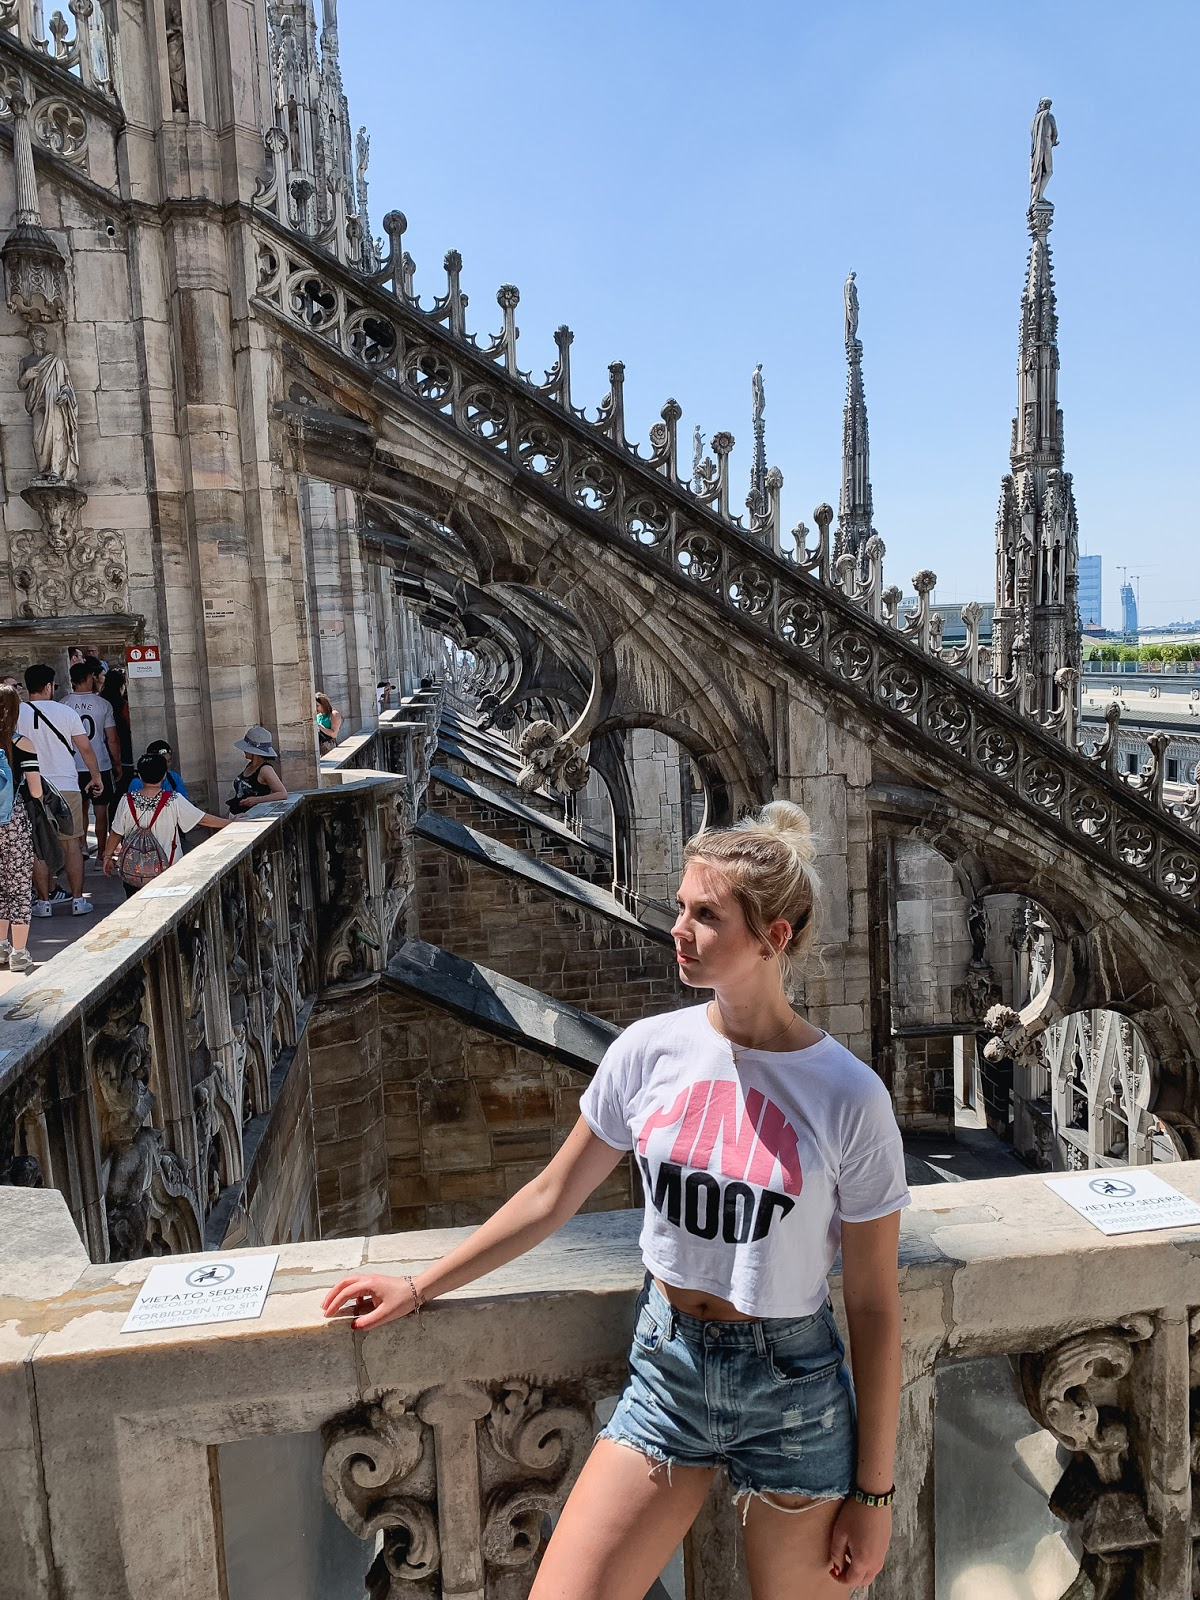 On top of Duomo di Milano